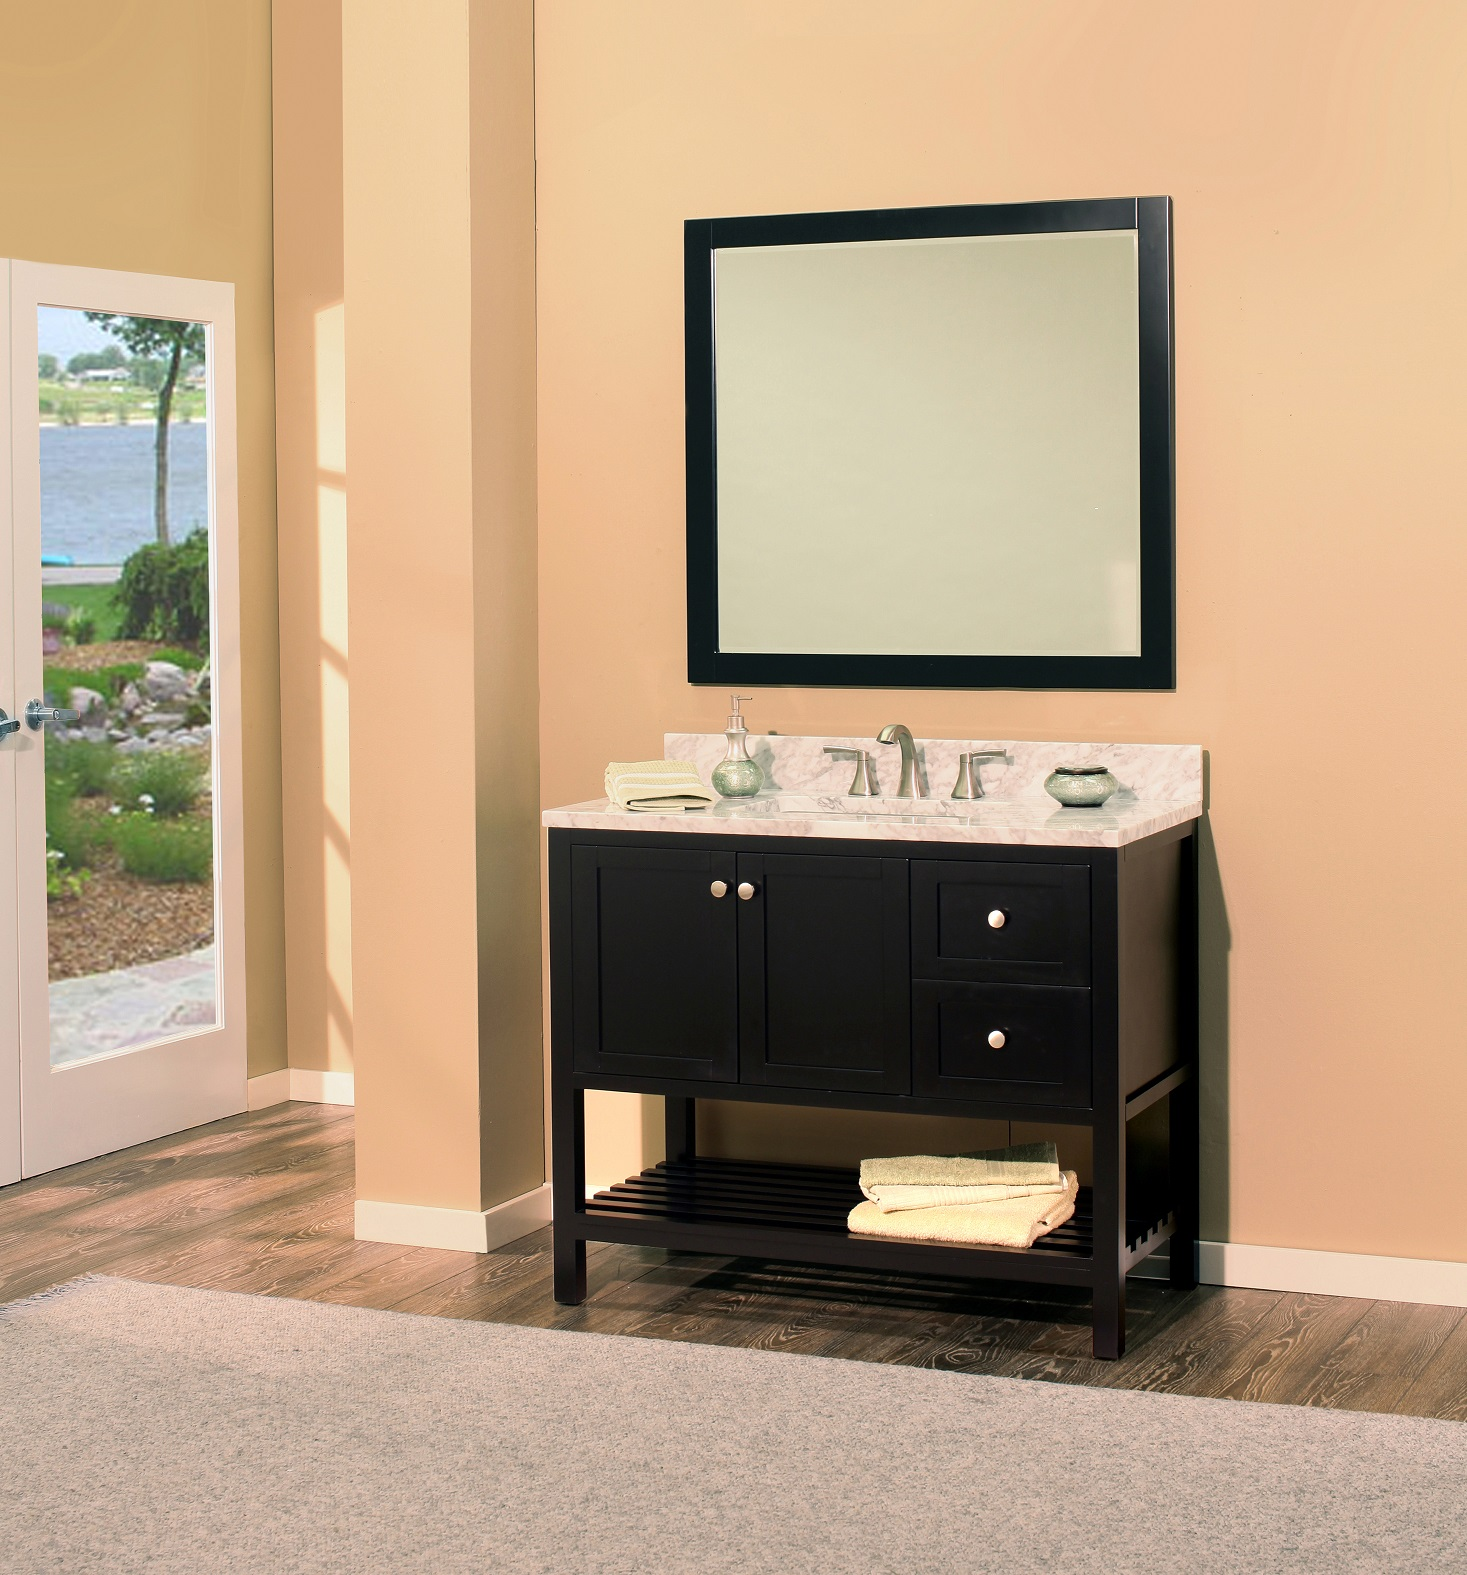 "hampton bay bathroom vanity set absolute black, 42"" dr     $1150.00"